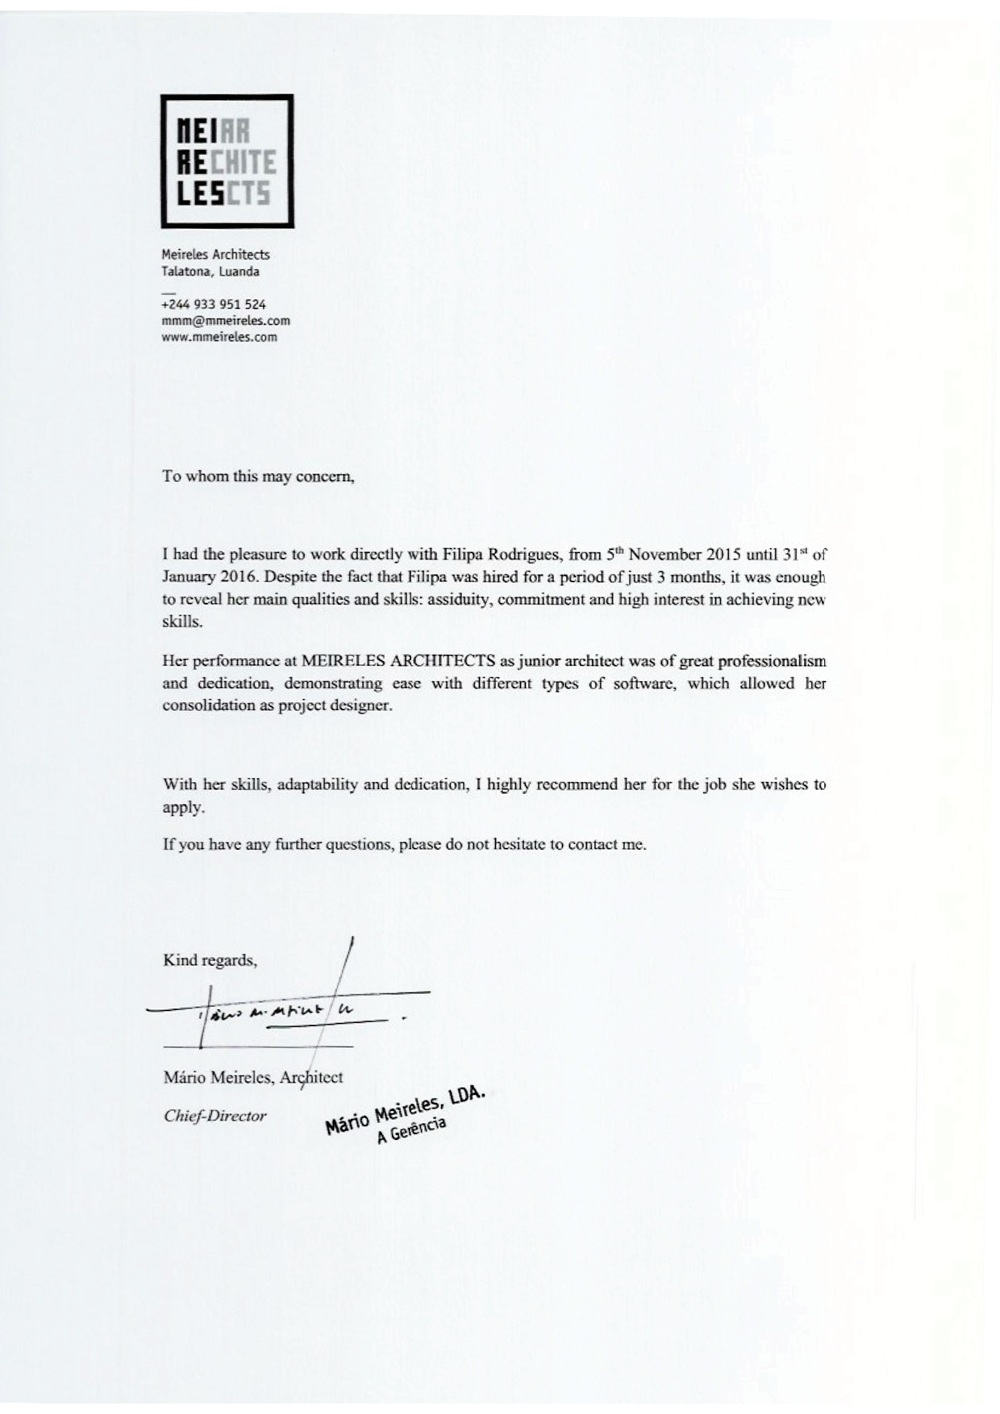 letter of recommendation to master degree in architecture  u2022 invitation template ideas